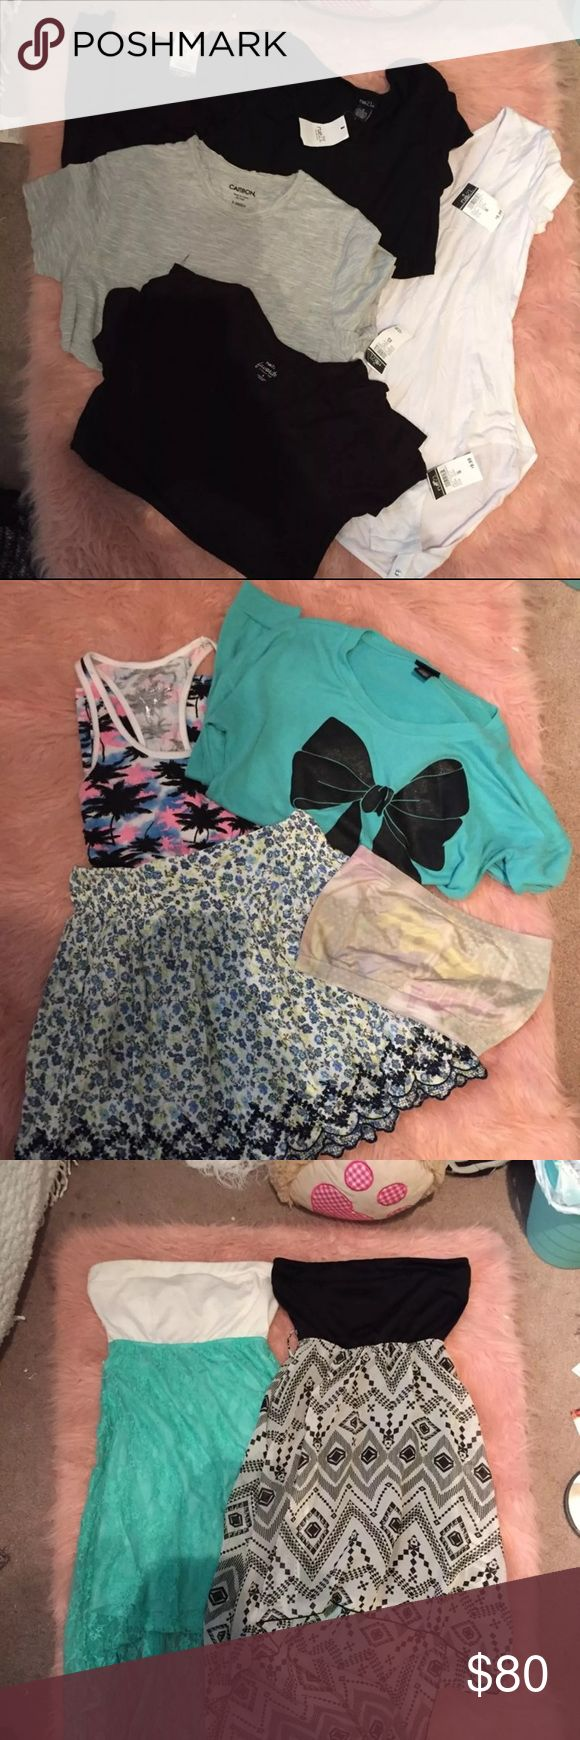 "HUGE RUE 21 BUNDLE LOTS NWT & NWOT GREAT FOR UPCOMING FALL/SCHOOL SEASON!! FEEL FREE TO MAKE AN OFFER!  15 Items!, All Size S/similar fit Includes: NWT Comfy BF Tee NWT Bodysuit NWT black turtleneck NWT Black swing Tee NWT Black ""favorite Tee"" NWOT tank, cartoon bandeau(faded) hi-low dress, hi-low dress(belt loops trimmed), ruebleu swim bottoms, Striped sweater Dress, NWOT Hunger Games Tee (Gildan Tee, bought@ Rue 21), Skirt, Sweatshirt,  Black LOVE Top Retail value over $100 just for NWT…"